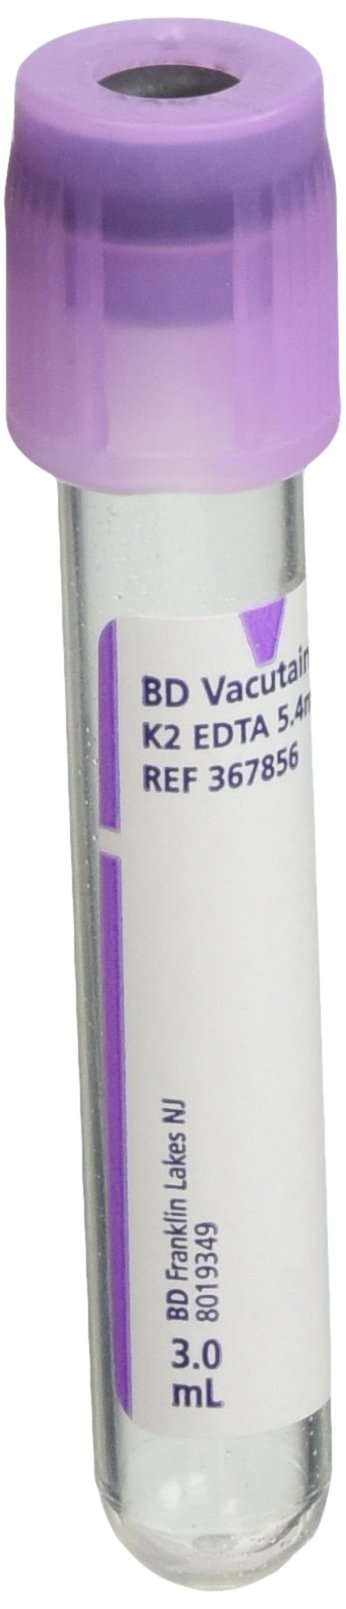 BD Medical Systems 367856 Plastic Tube, Hemogard Closure, Paper Label, 13 mm x 75 mm Size, 3 mL Capacity, Lavender (Pack of 100)